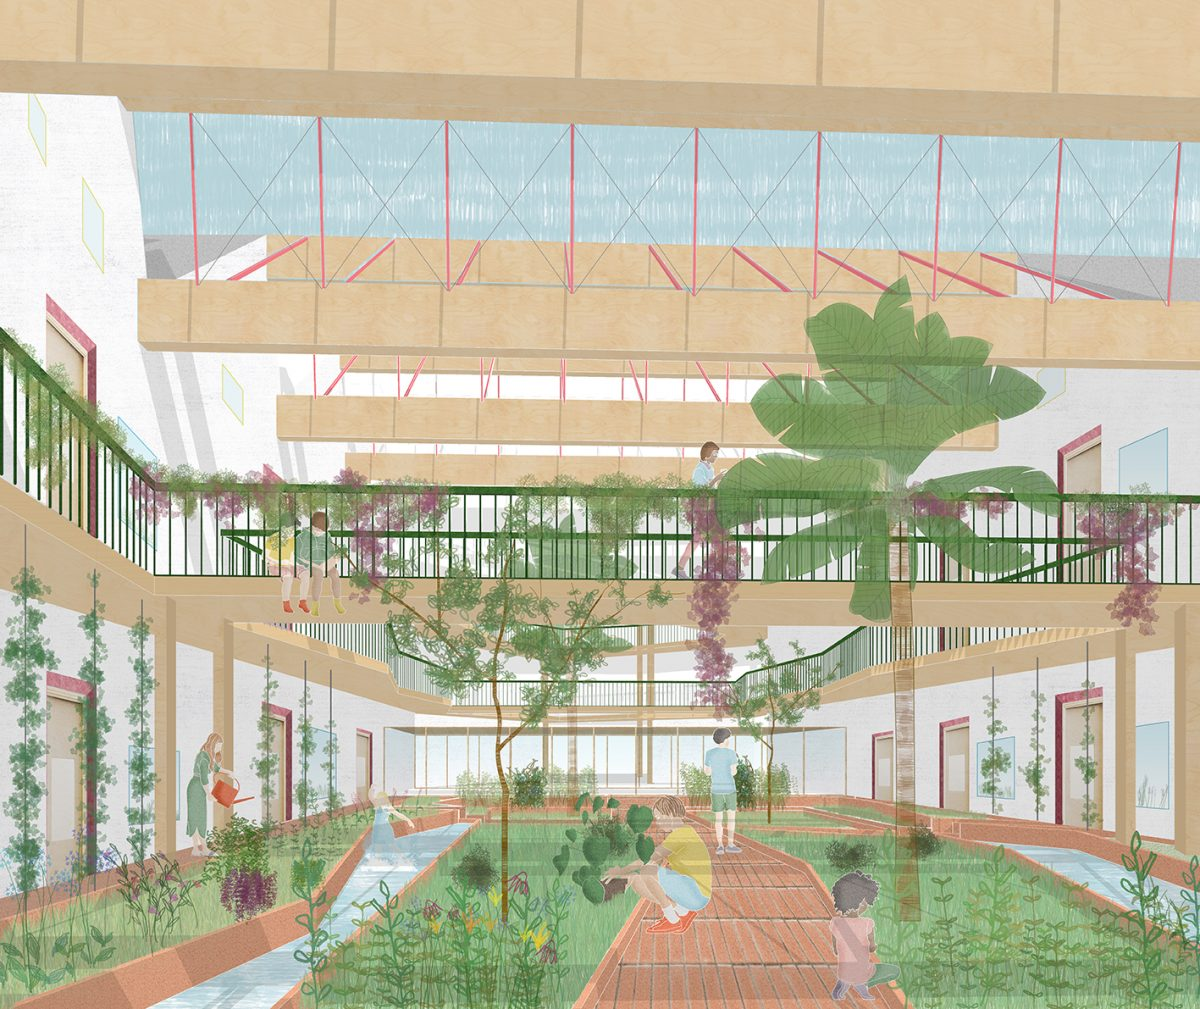 The internal garden is a verdant, Eden-like space at the heart of the school - a public square within the building with façades that make a town square.